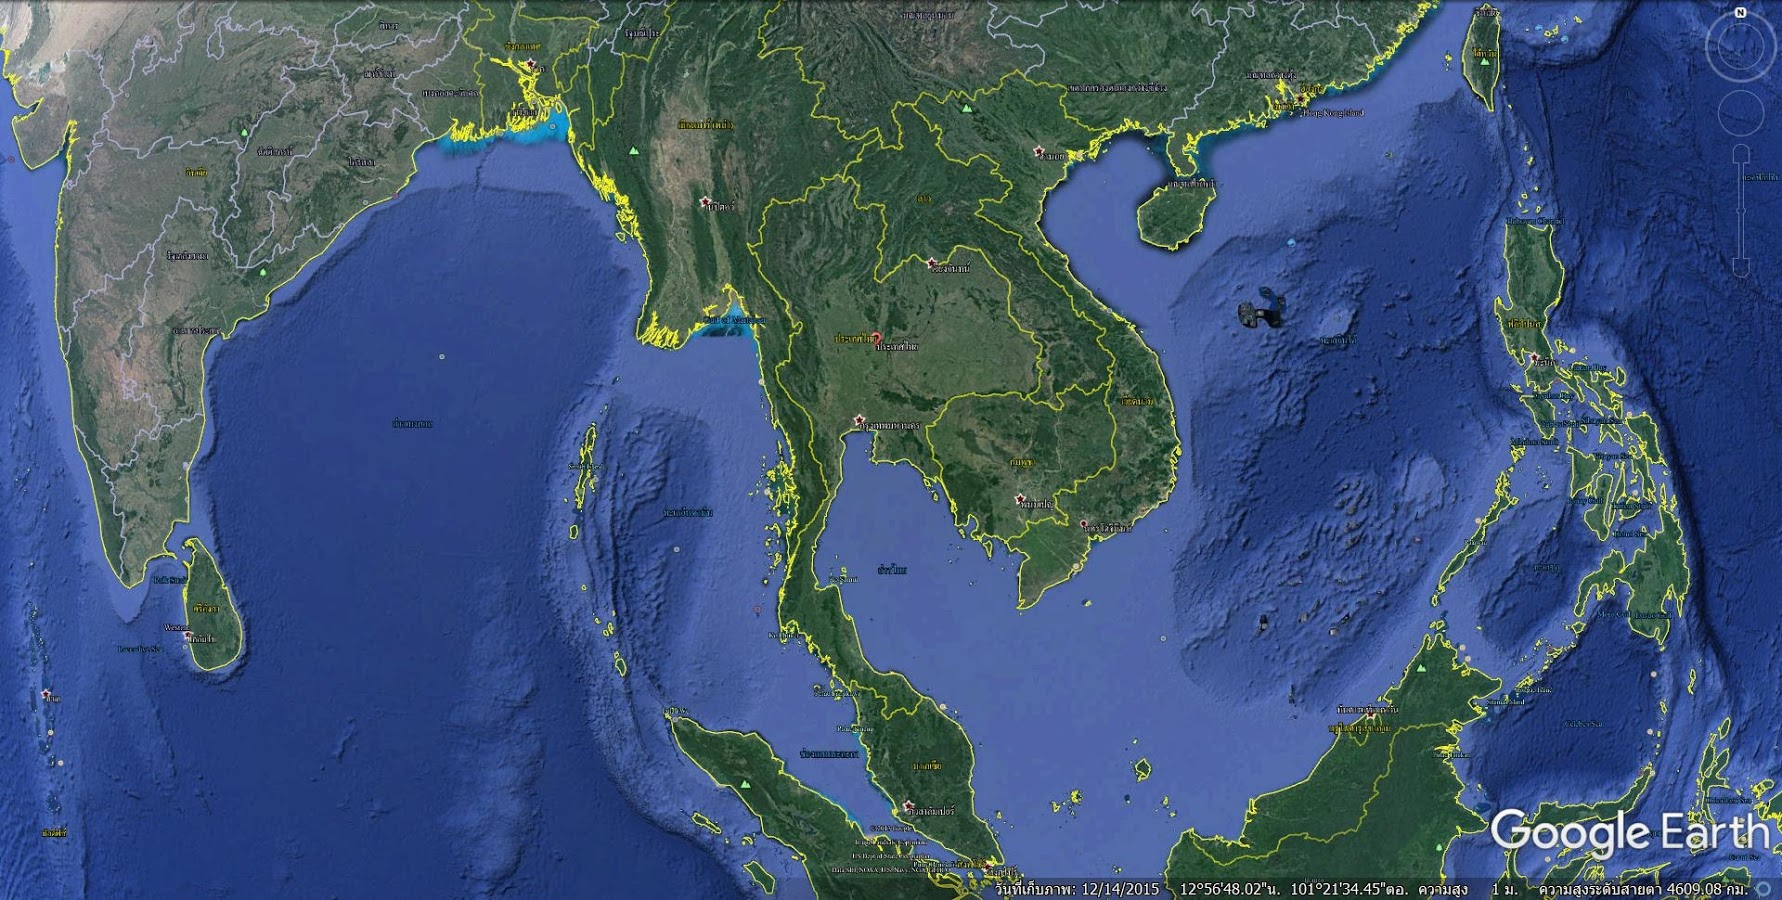 Google earth asia august 10 2017 httpsgoomapsbm6c1spfw2b2 thailand httpsearth googleweb1303909051014901044817606419a289889548387085d35y0h0t gumiabroncs Images